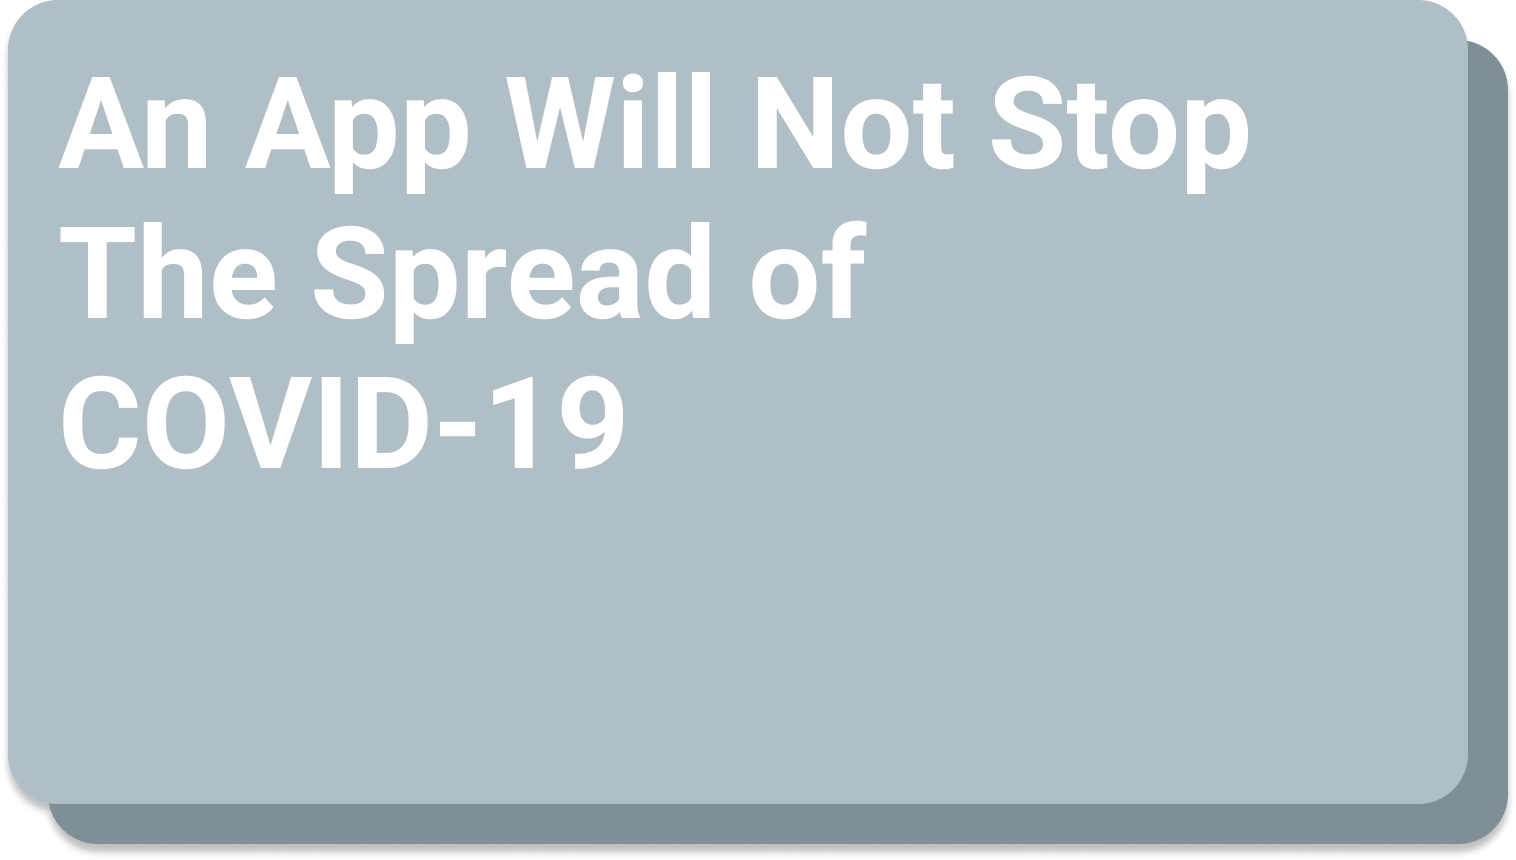 An App Will Not Stop The Spread of COVID-19